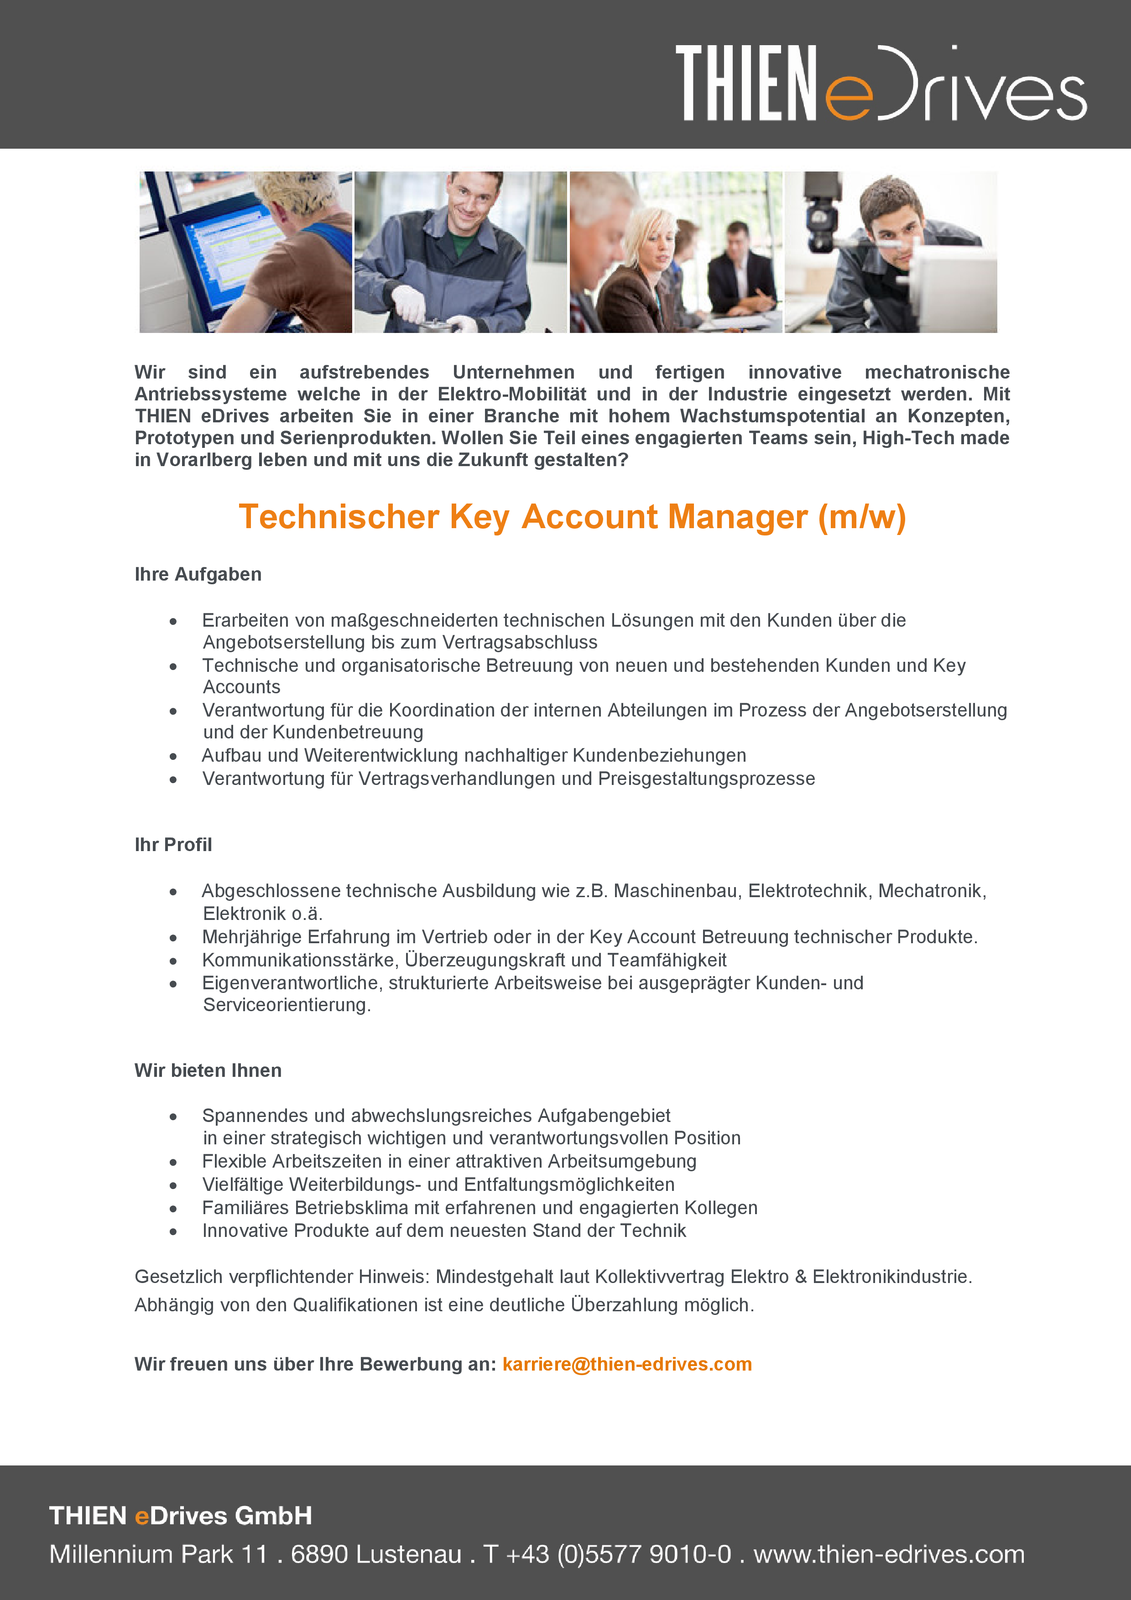 Technischer Key Account Manager (m/w)